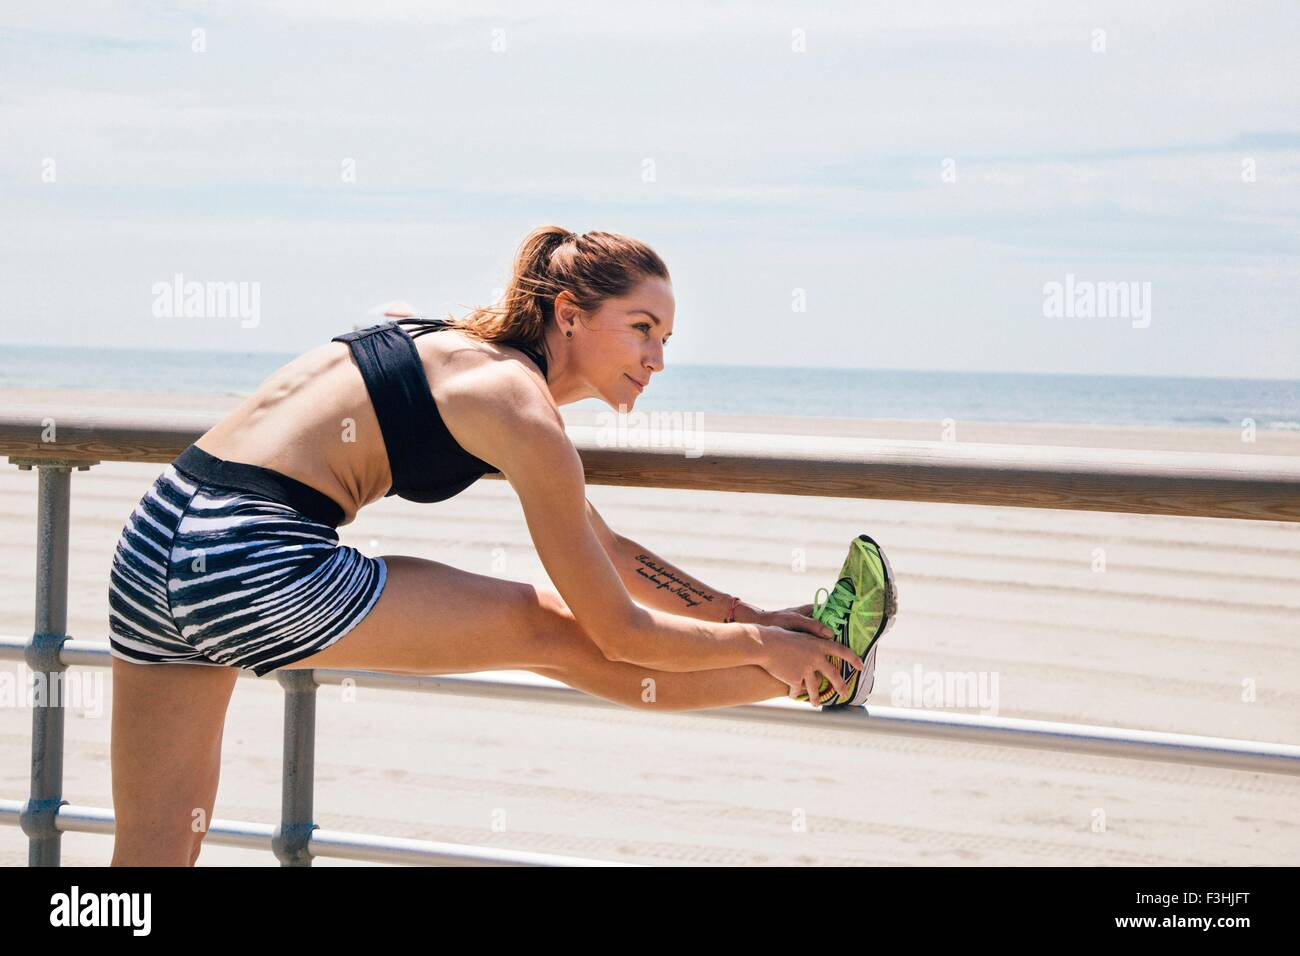 Mid adult woman standing by beach, stretching against railings - Stock Image